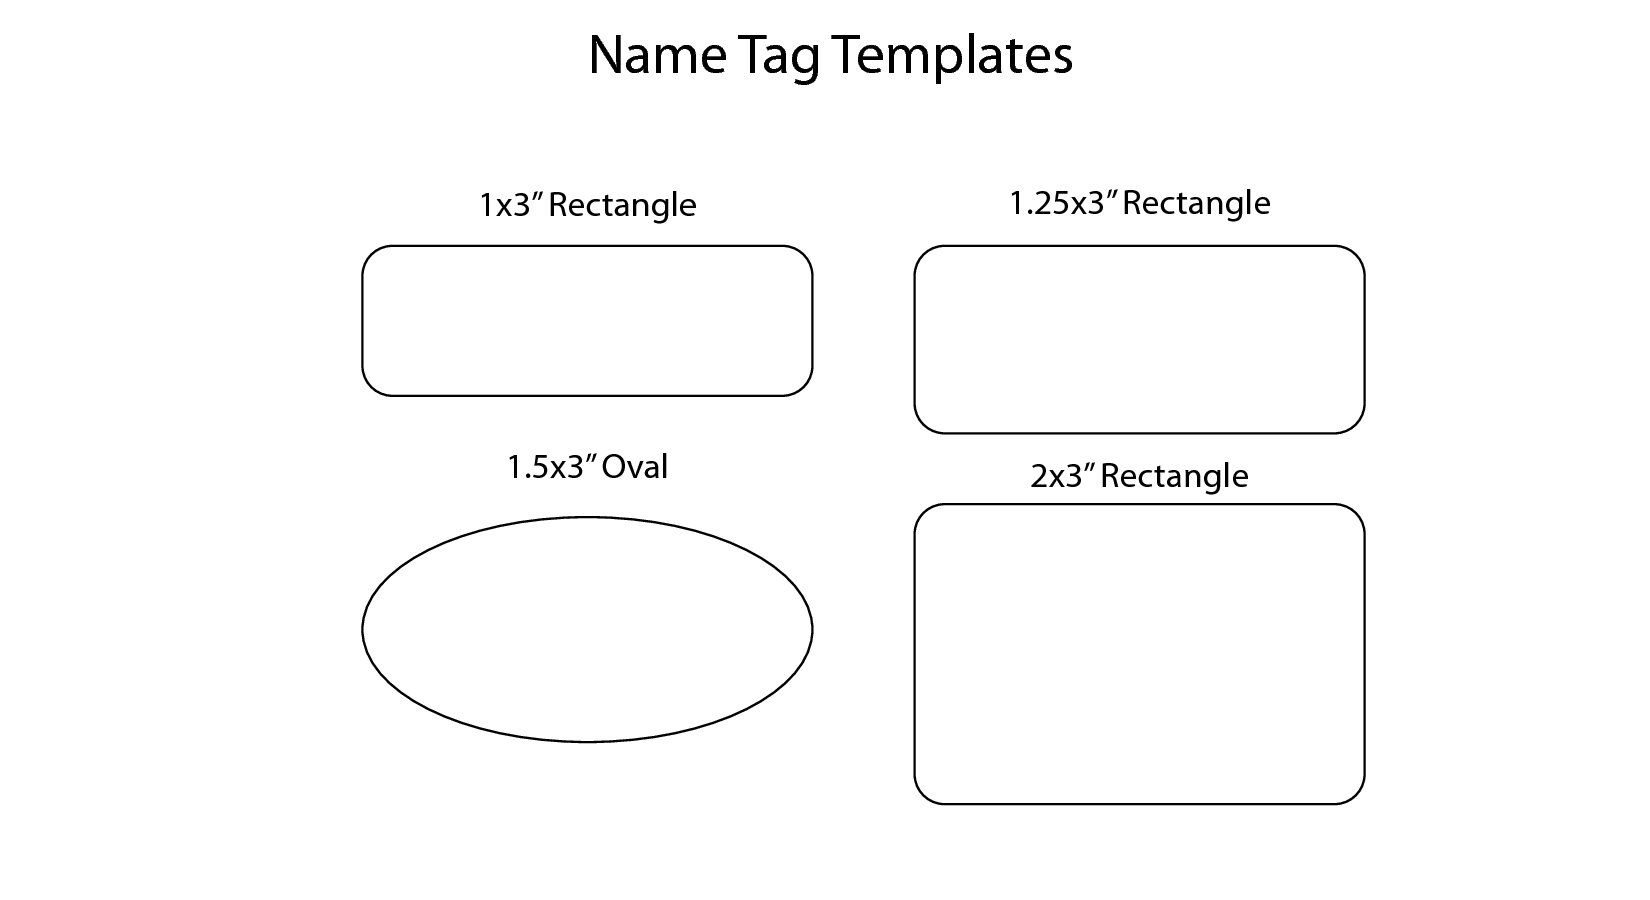 Name Badge Template Free from www.newdesignfile.com